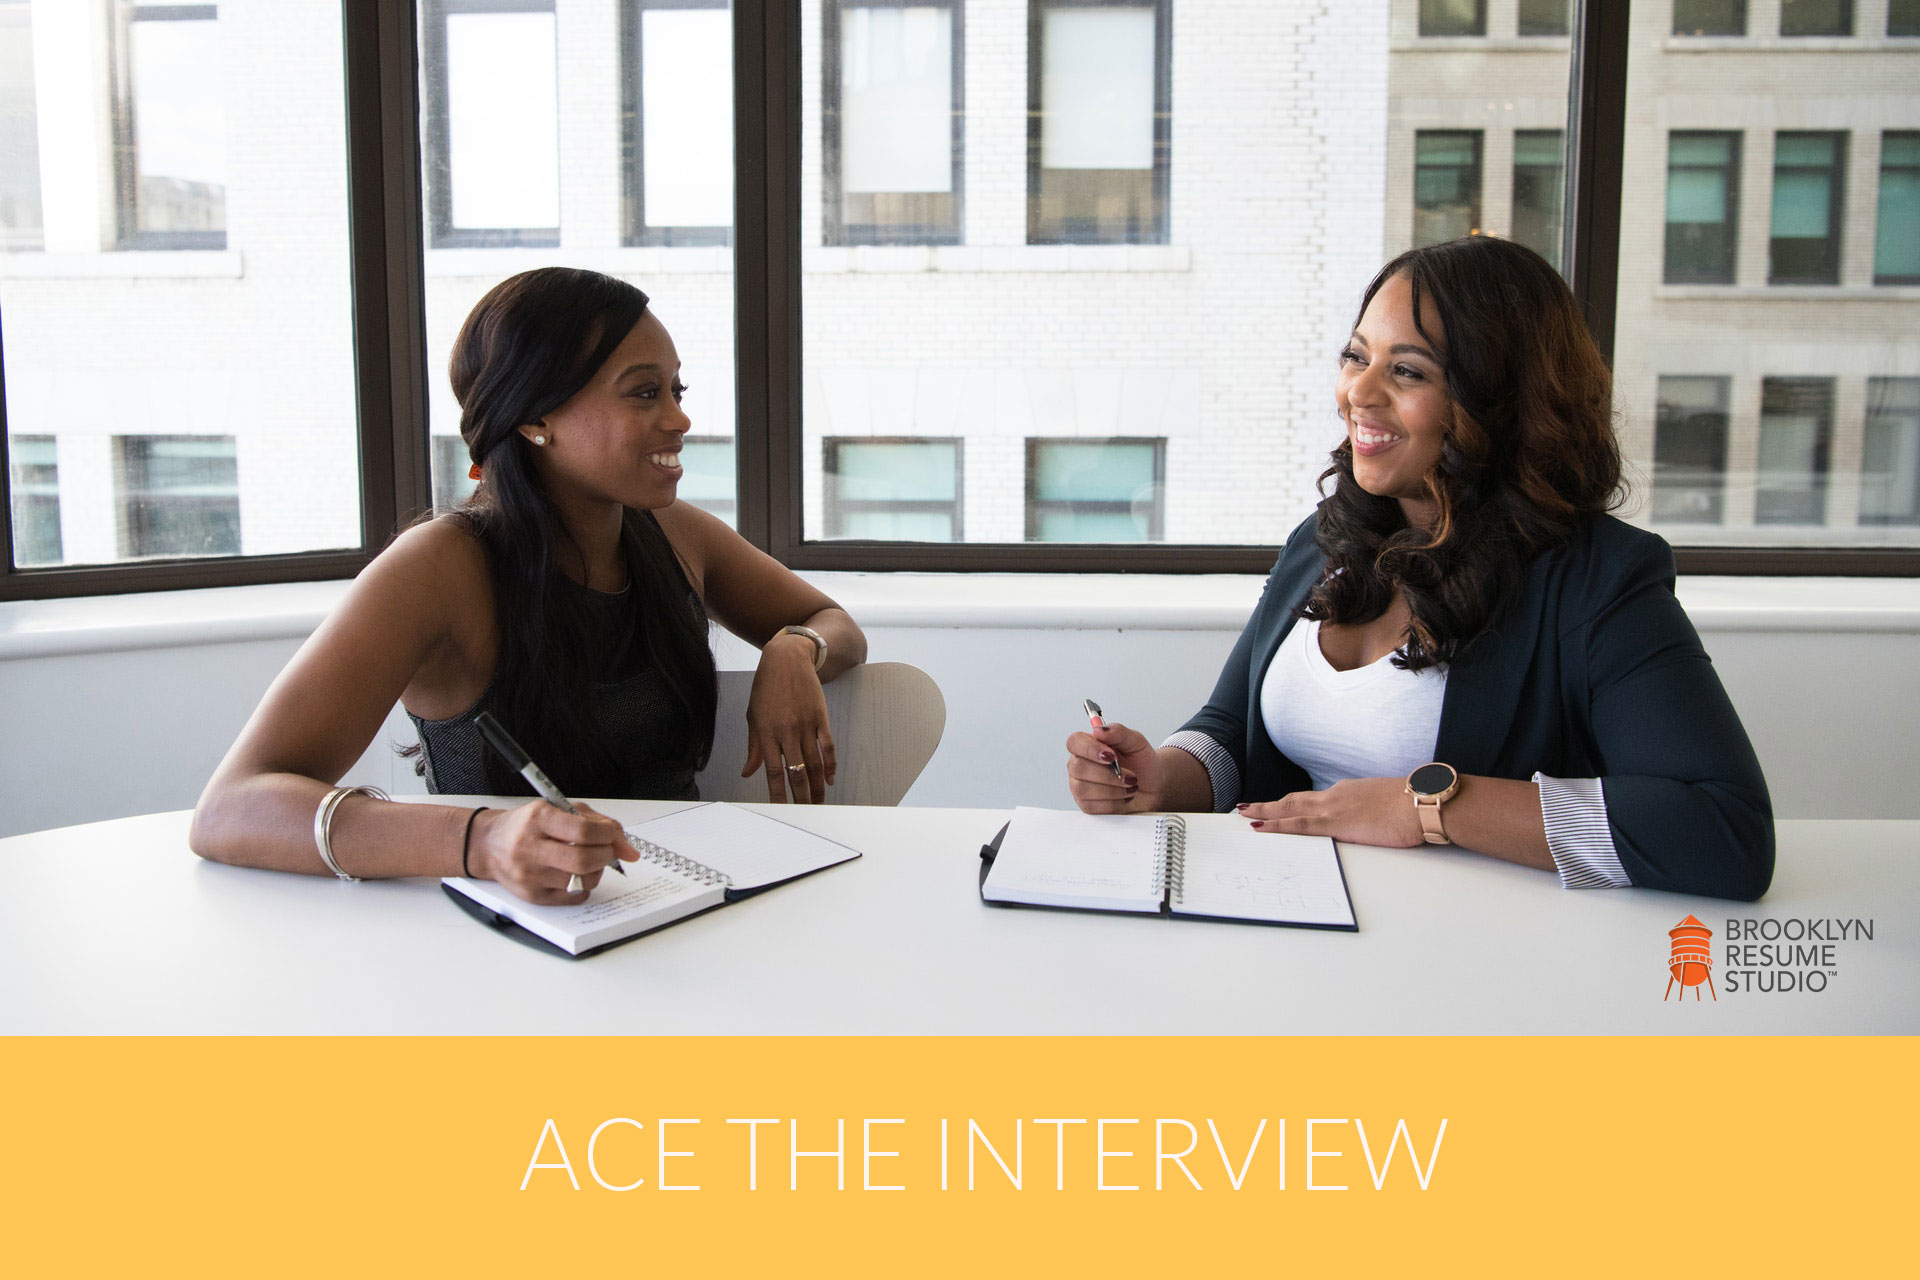 3 Quick Tips to Improve Your Interview Performance